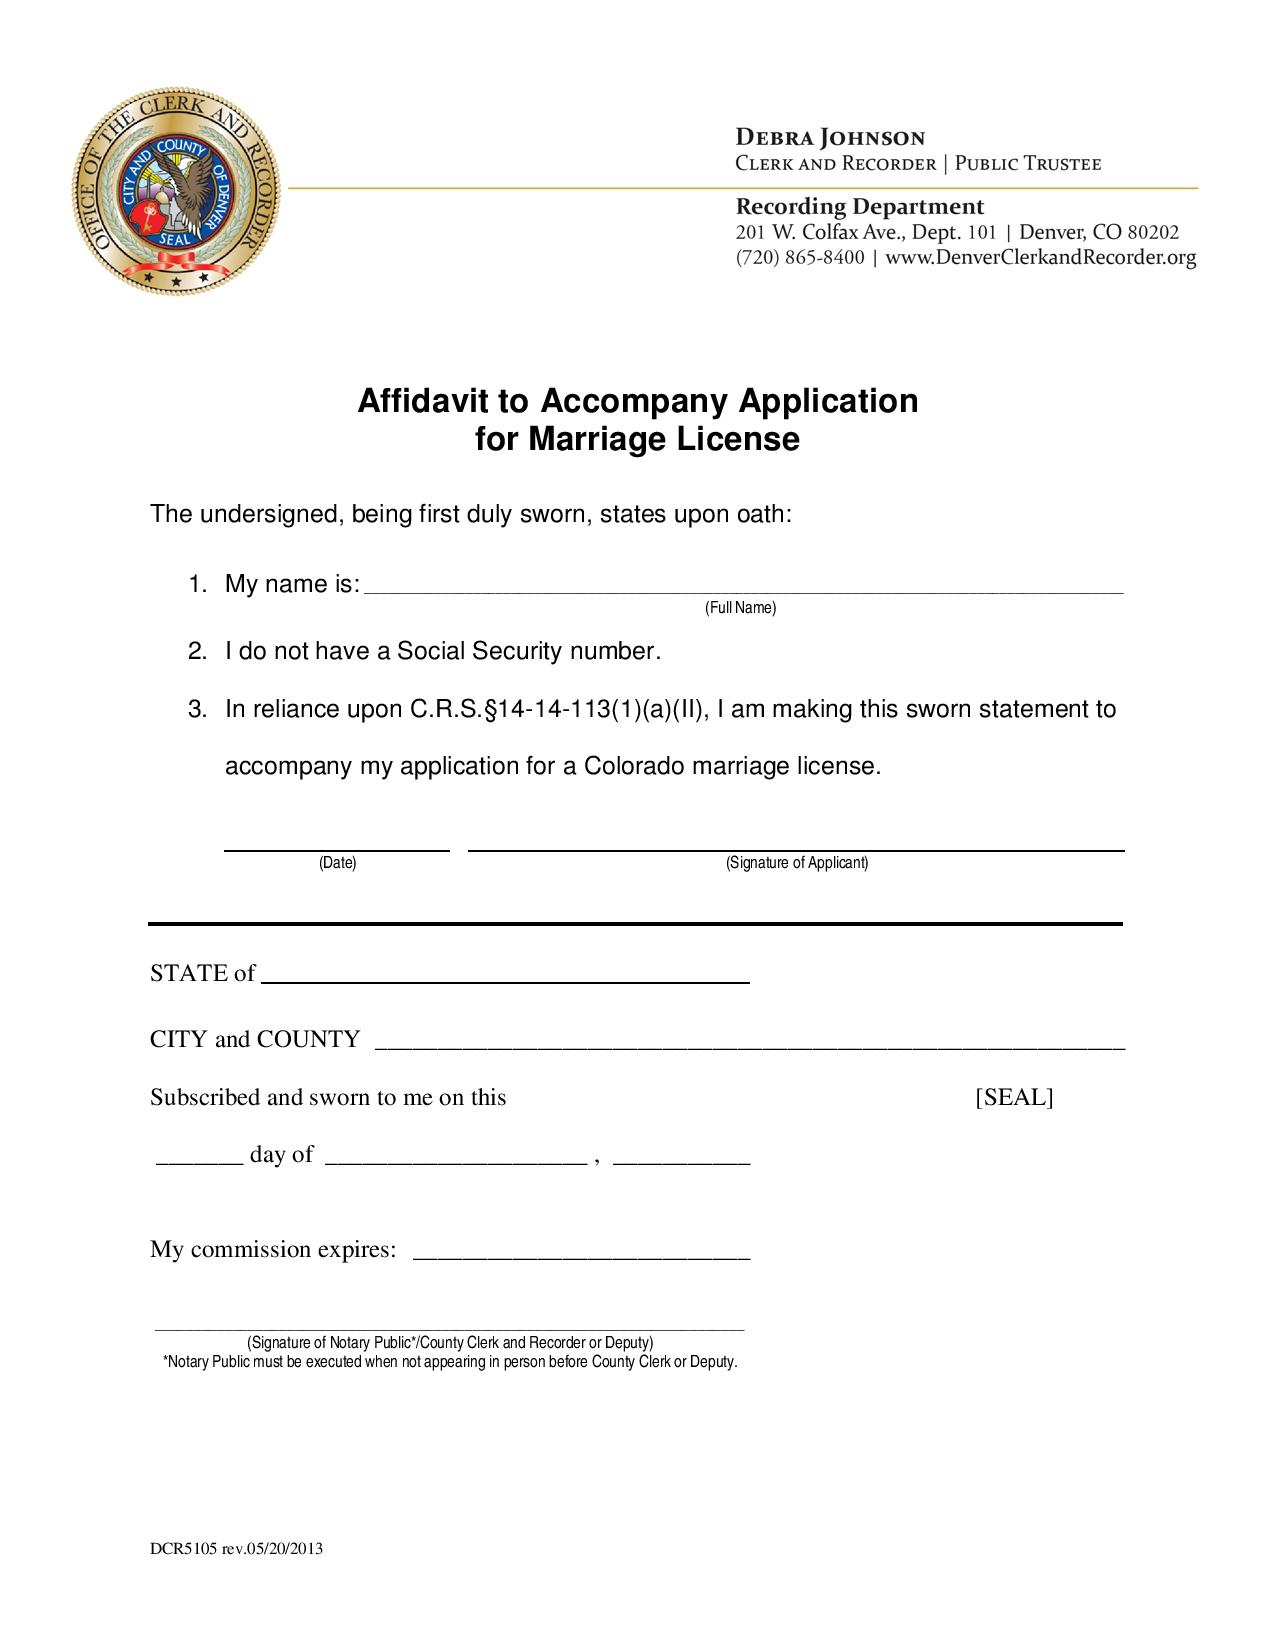 Jdf Application Form Applicant on female uniform, pro jamaica workers, buildings jamaica, soldier training, signed pic, montego bay flanka, soldier injuries training, montego bay, uniform 50 years ago, training camp gallery, fighing crime jamaica, training camp st. james,